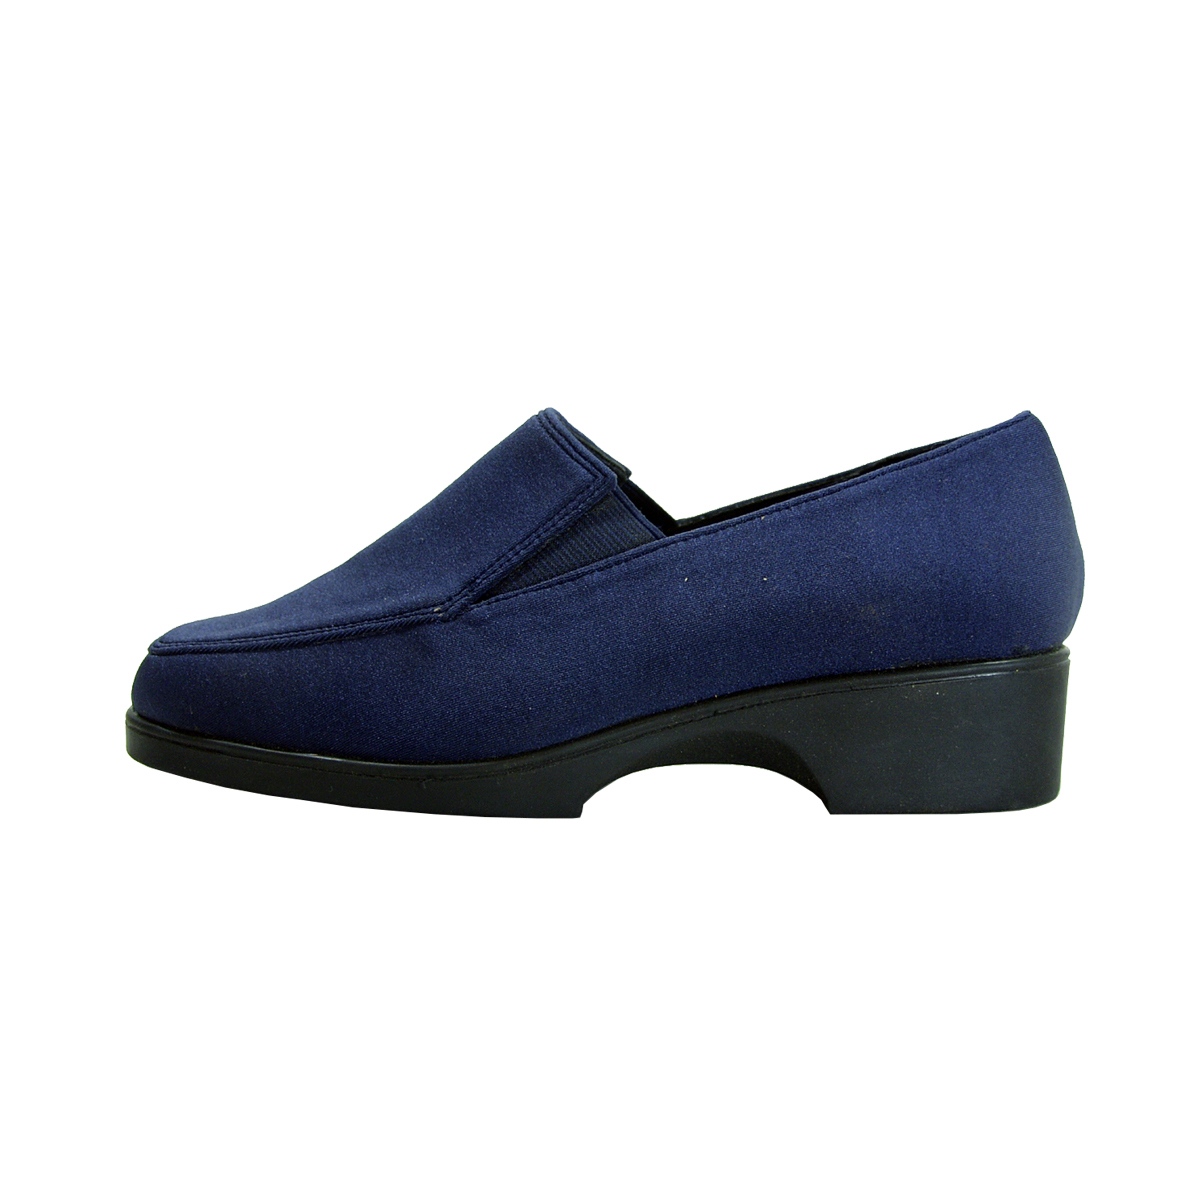 FUZZY Indie Wide Width Classic Slip On Shoes image 3